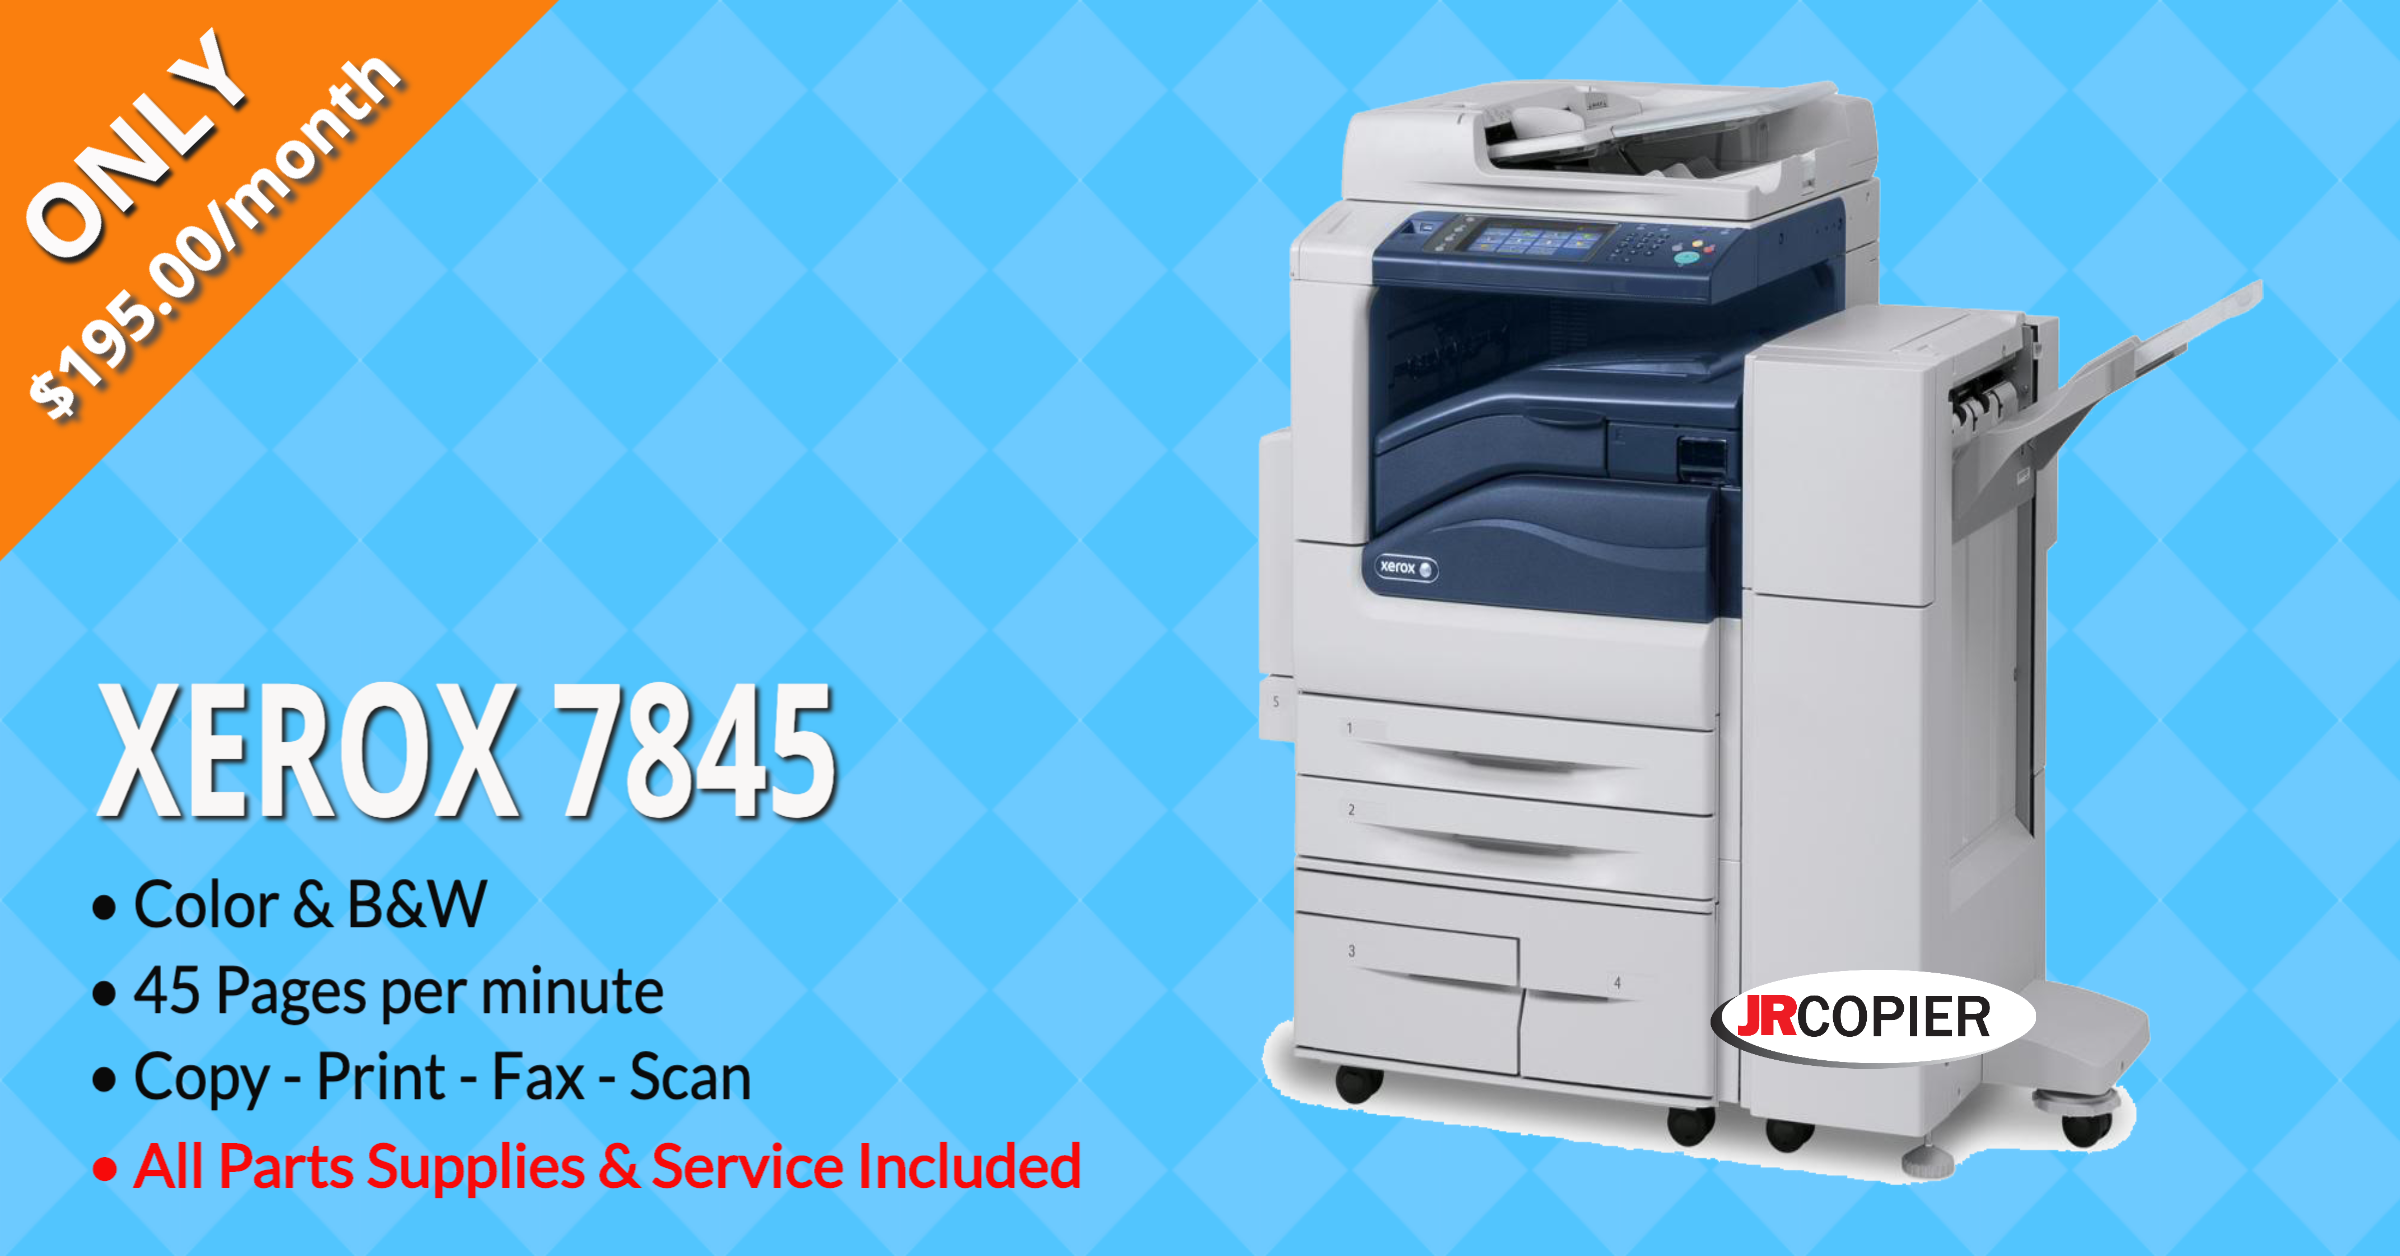 Multifunction Printer Sales 75701, 75702, 75703, 75704, 75705, 75706, 75707, 75708, 75709, 75710, 75711, 75712, 75713, 75798, 75799